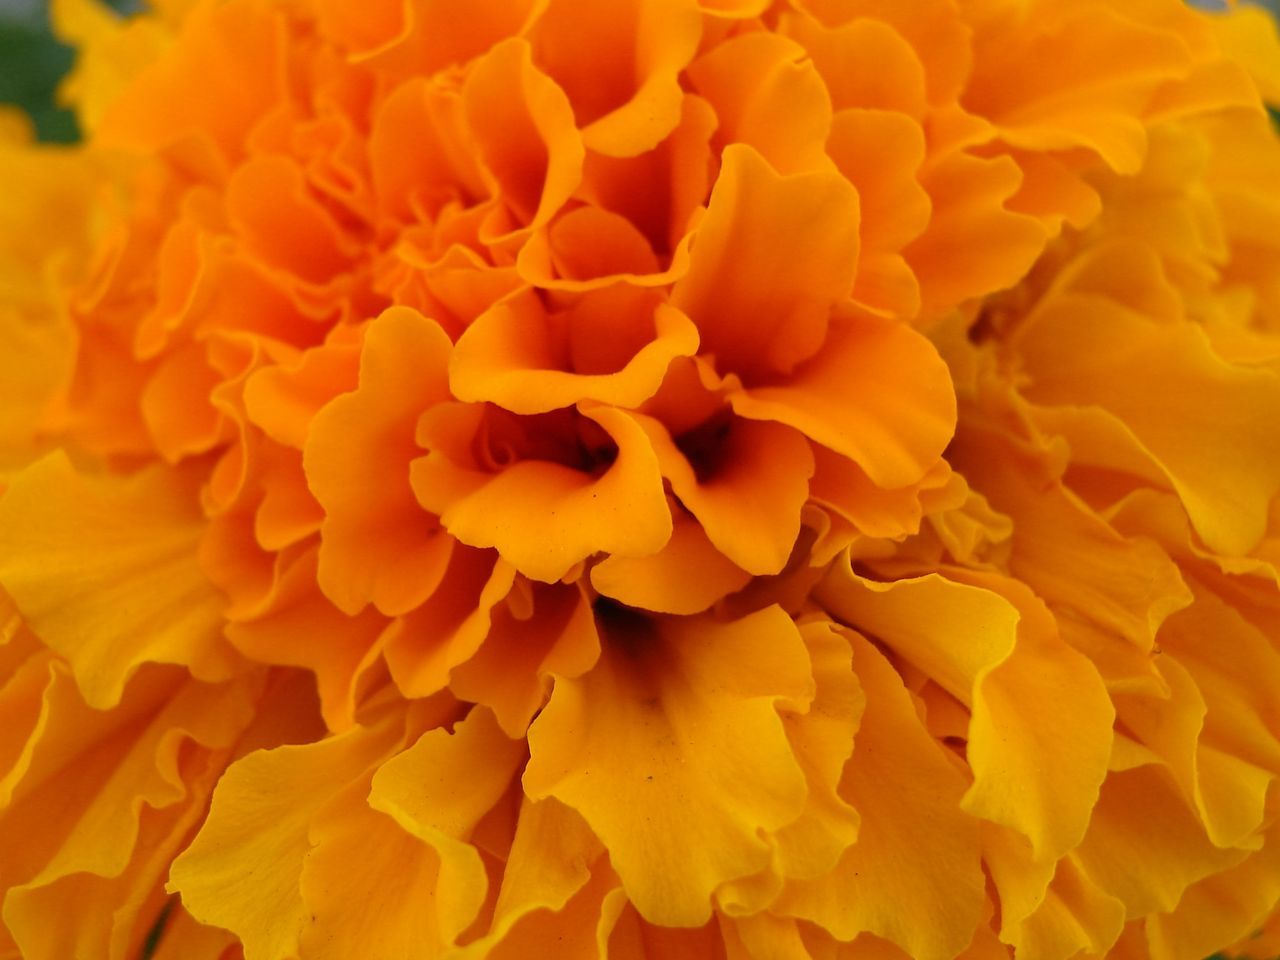 flower, petal, beauty in nature, fragility, flower head, nature, freshness, backgrounds, full frame, no people, close-up, plant, growth, yellow, blooming, outdoors, day, marigold